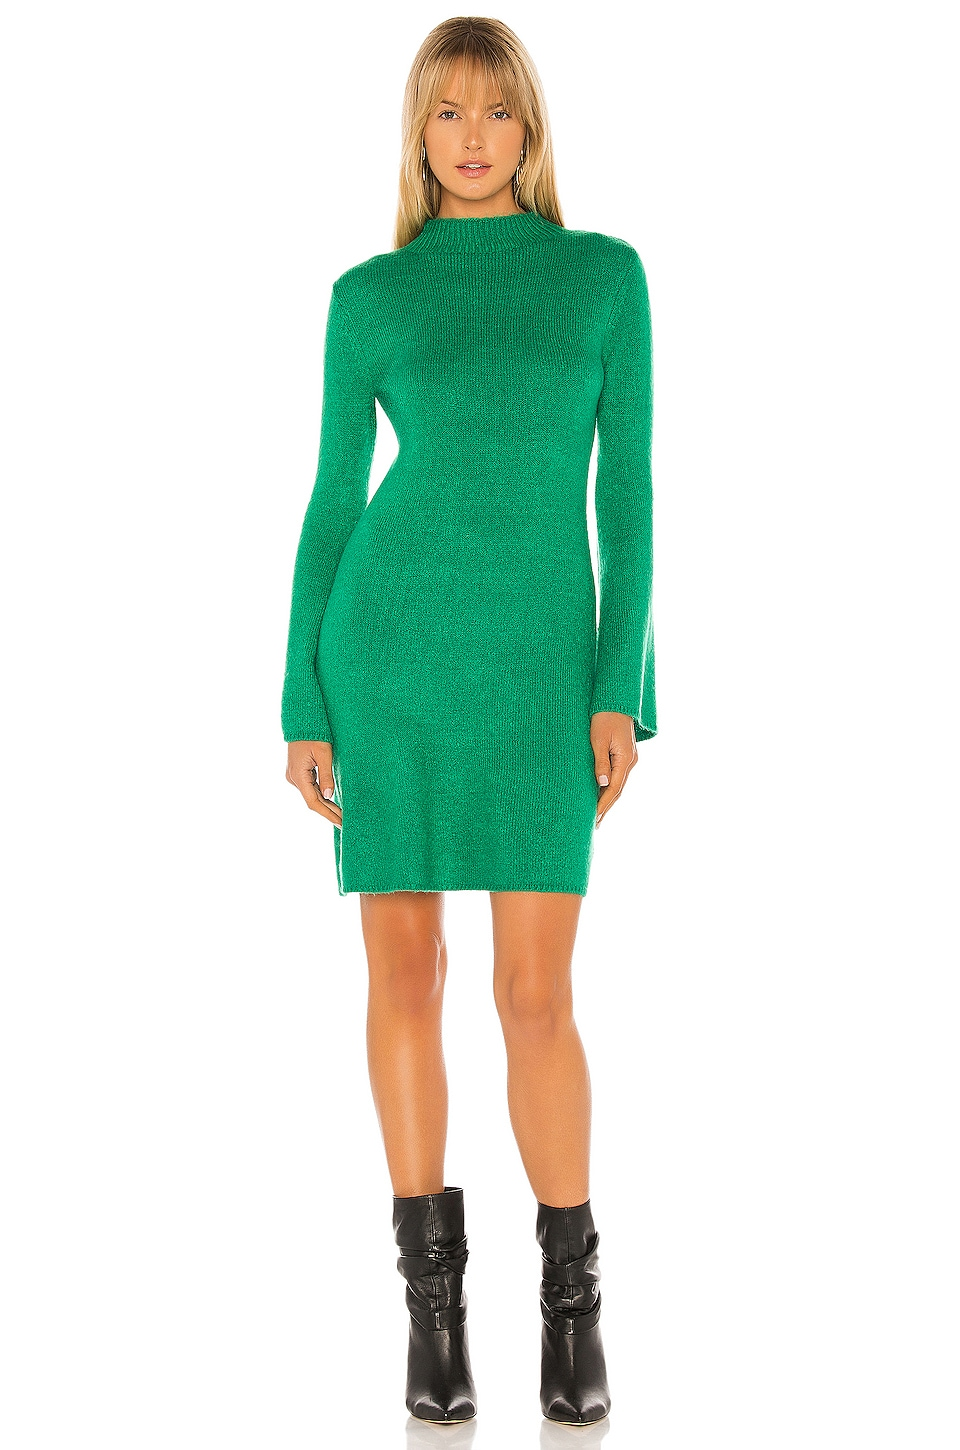 Bardot Knitted Dress in Bright Green